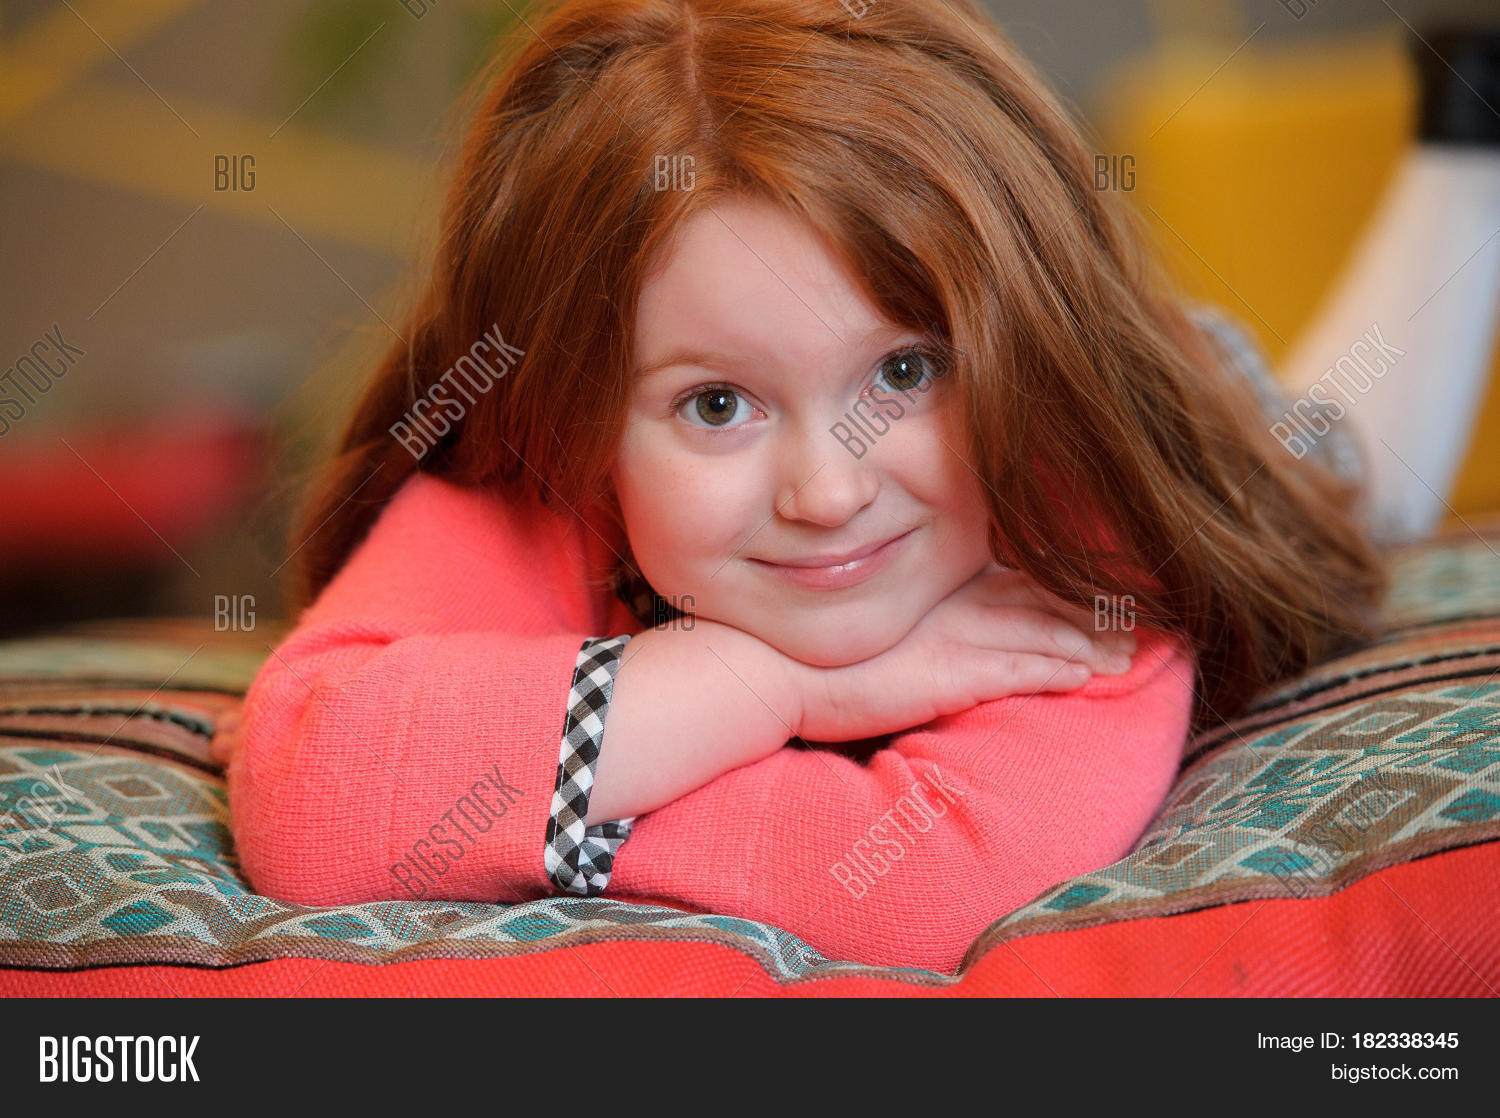 Beautiful little girl smiling red image photo bigstock for Beautiful small teen